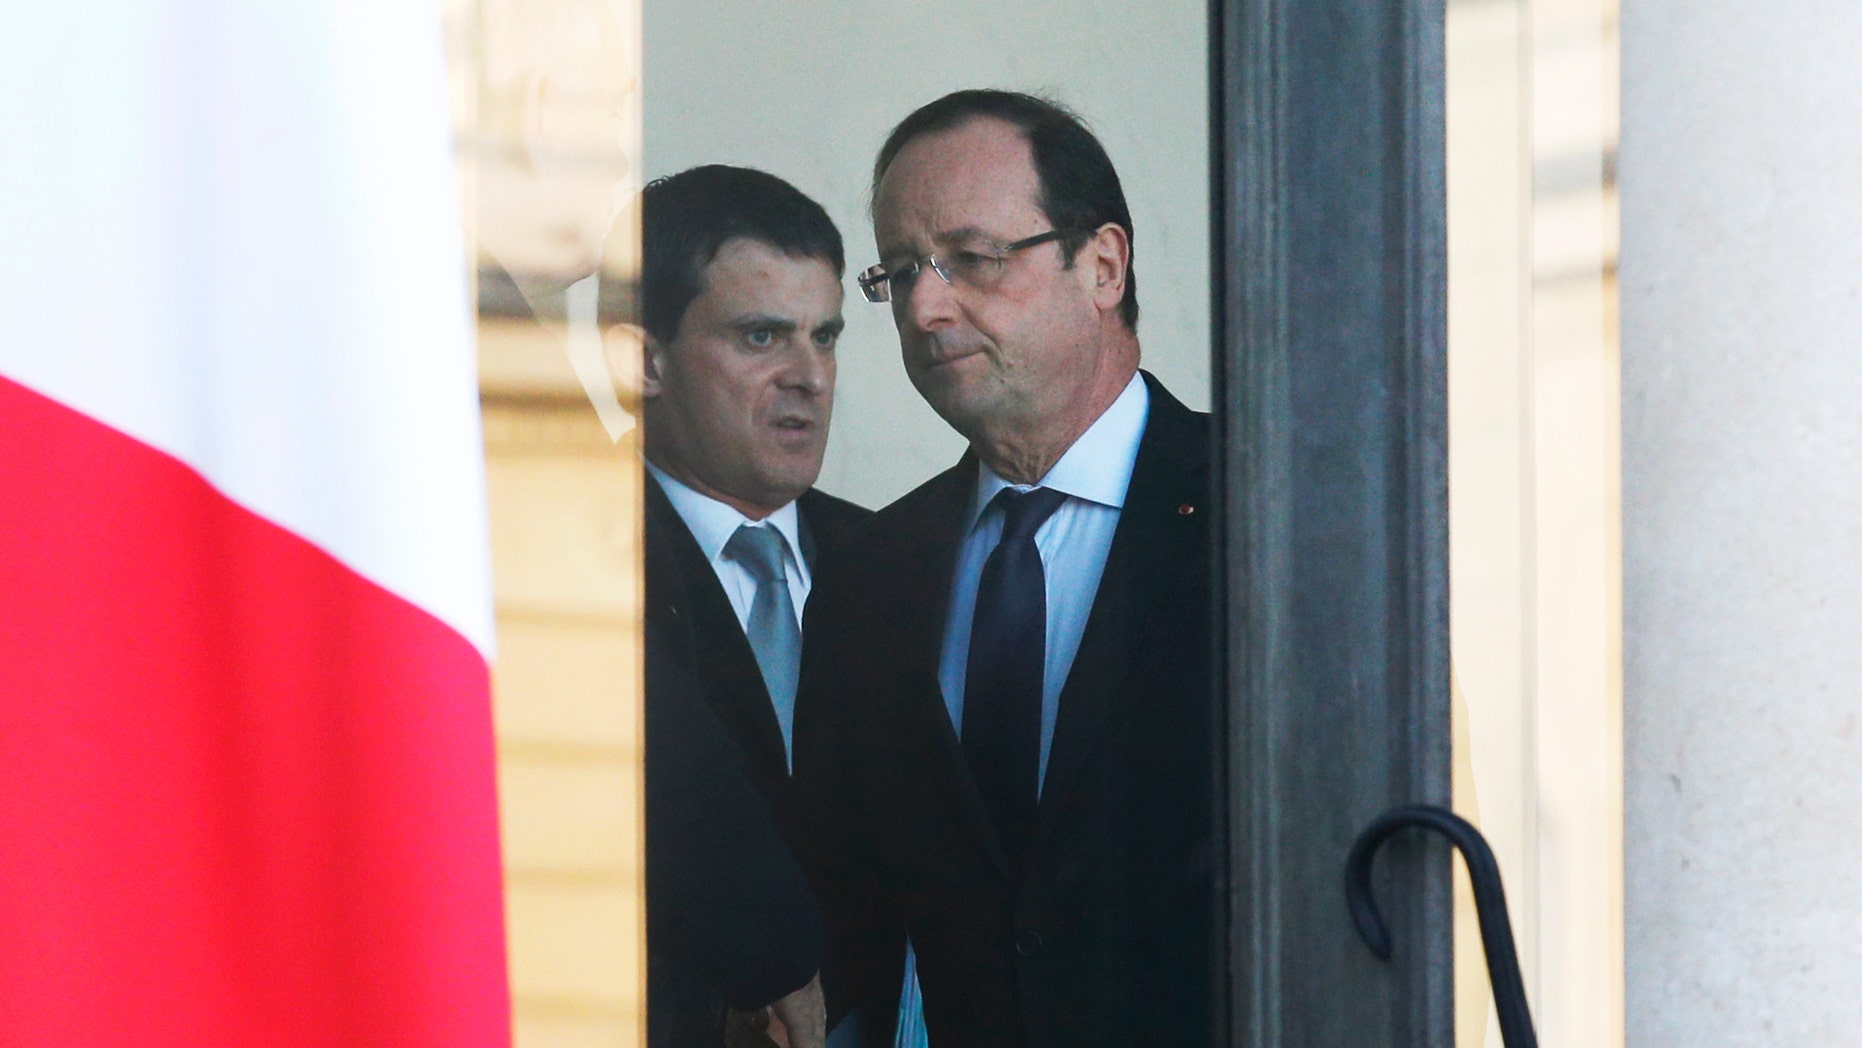 French President Francois Hollande, center right, and Interior Minister Manuel Valls leave after a meeting focused on the Malian situation, at the Elysee Palace in Paris, Monday, Jan. 14, 2013. French fighter jets bombed rebel targets in a major city in Mali's north Sunday, pounding the airport as well as training camps, warehouses and buildings used by the al-Qaida-linked Islamists controlling the area, officials and residents said. (AP Photo/Christophe Ena)